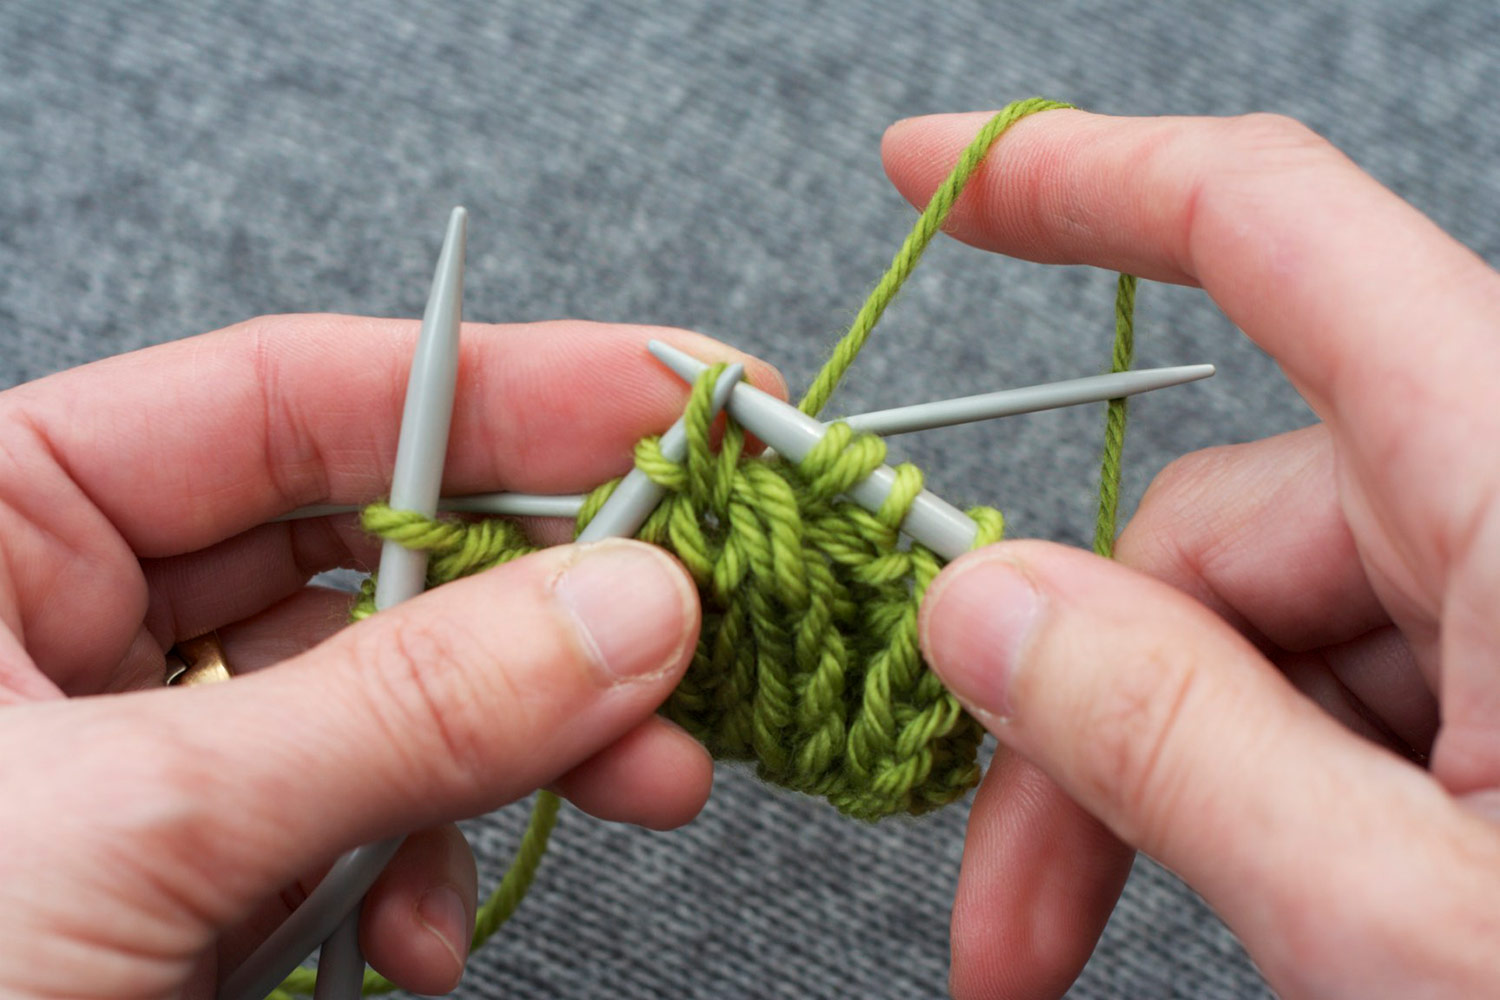 Right needle is inserted knitwise through the back of the loop into next stitch on front cable needle, preparing to knit it.